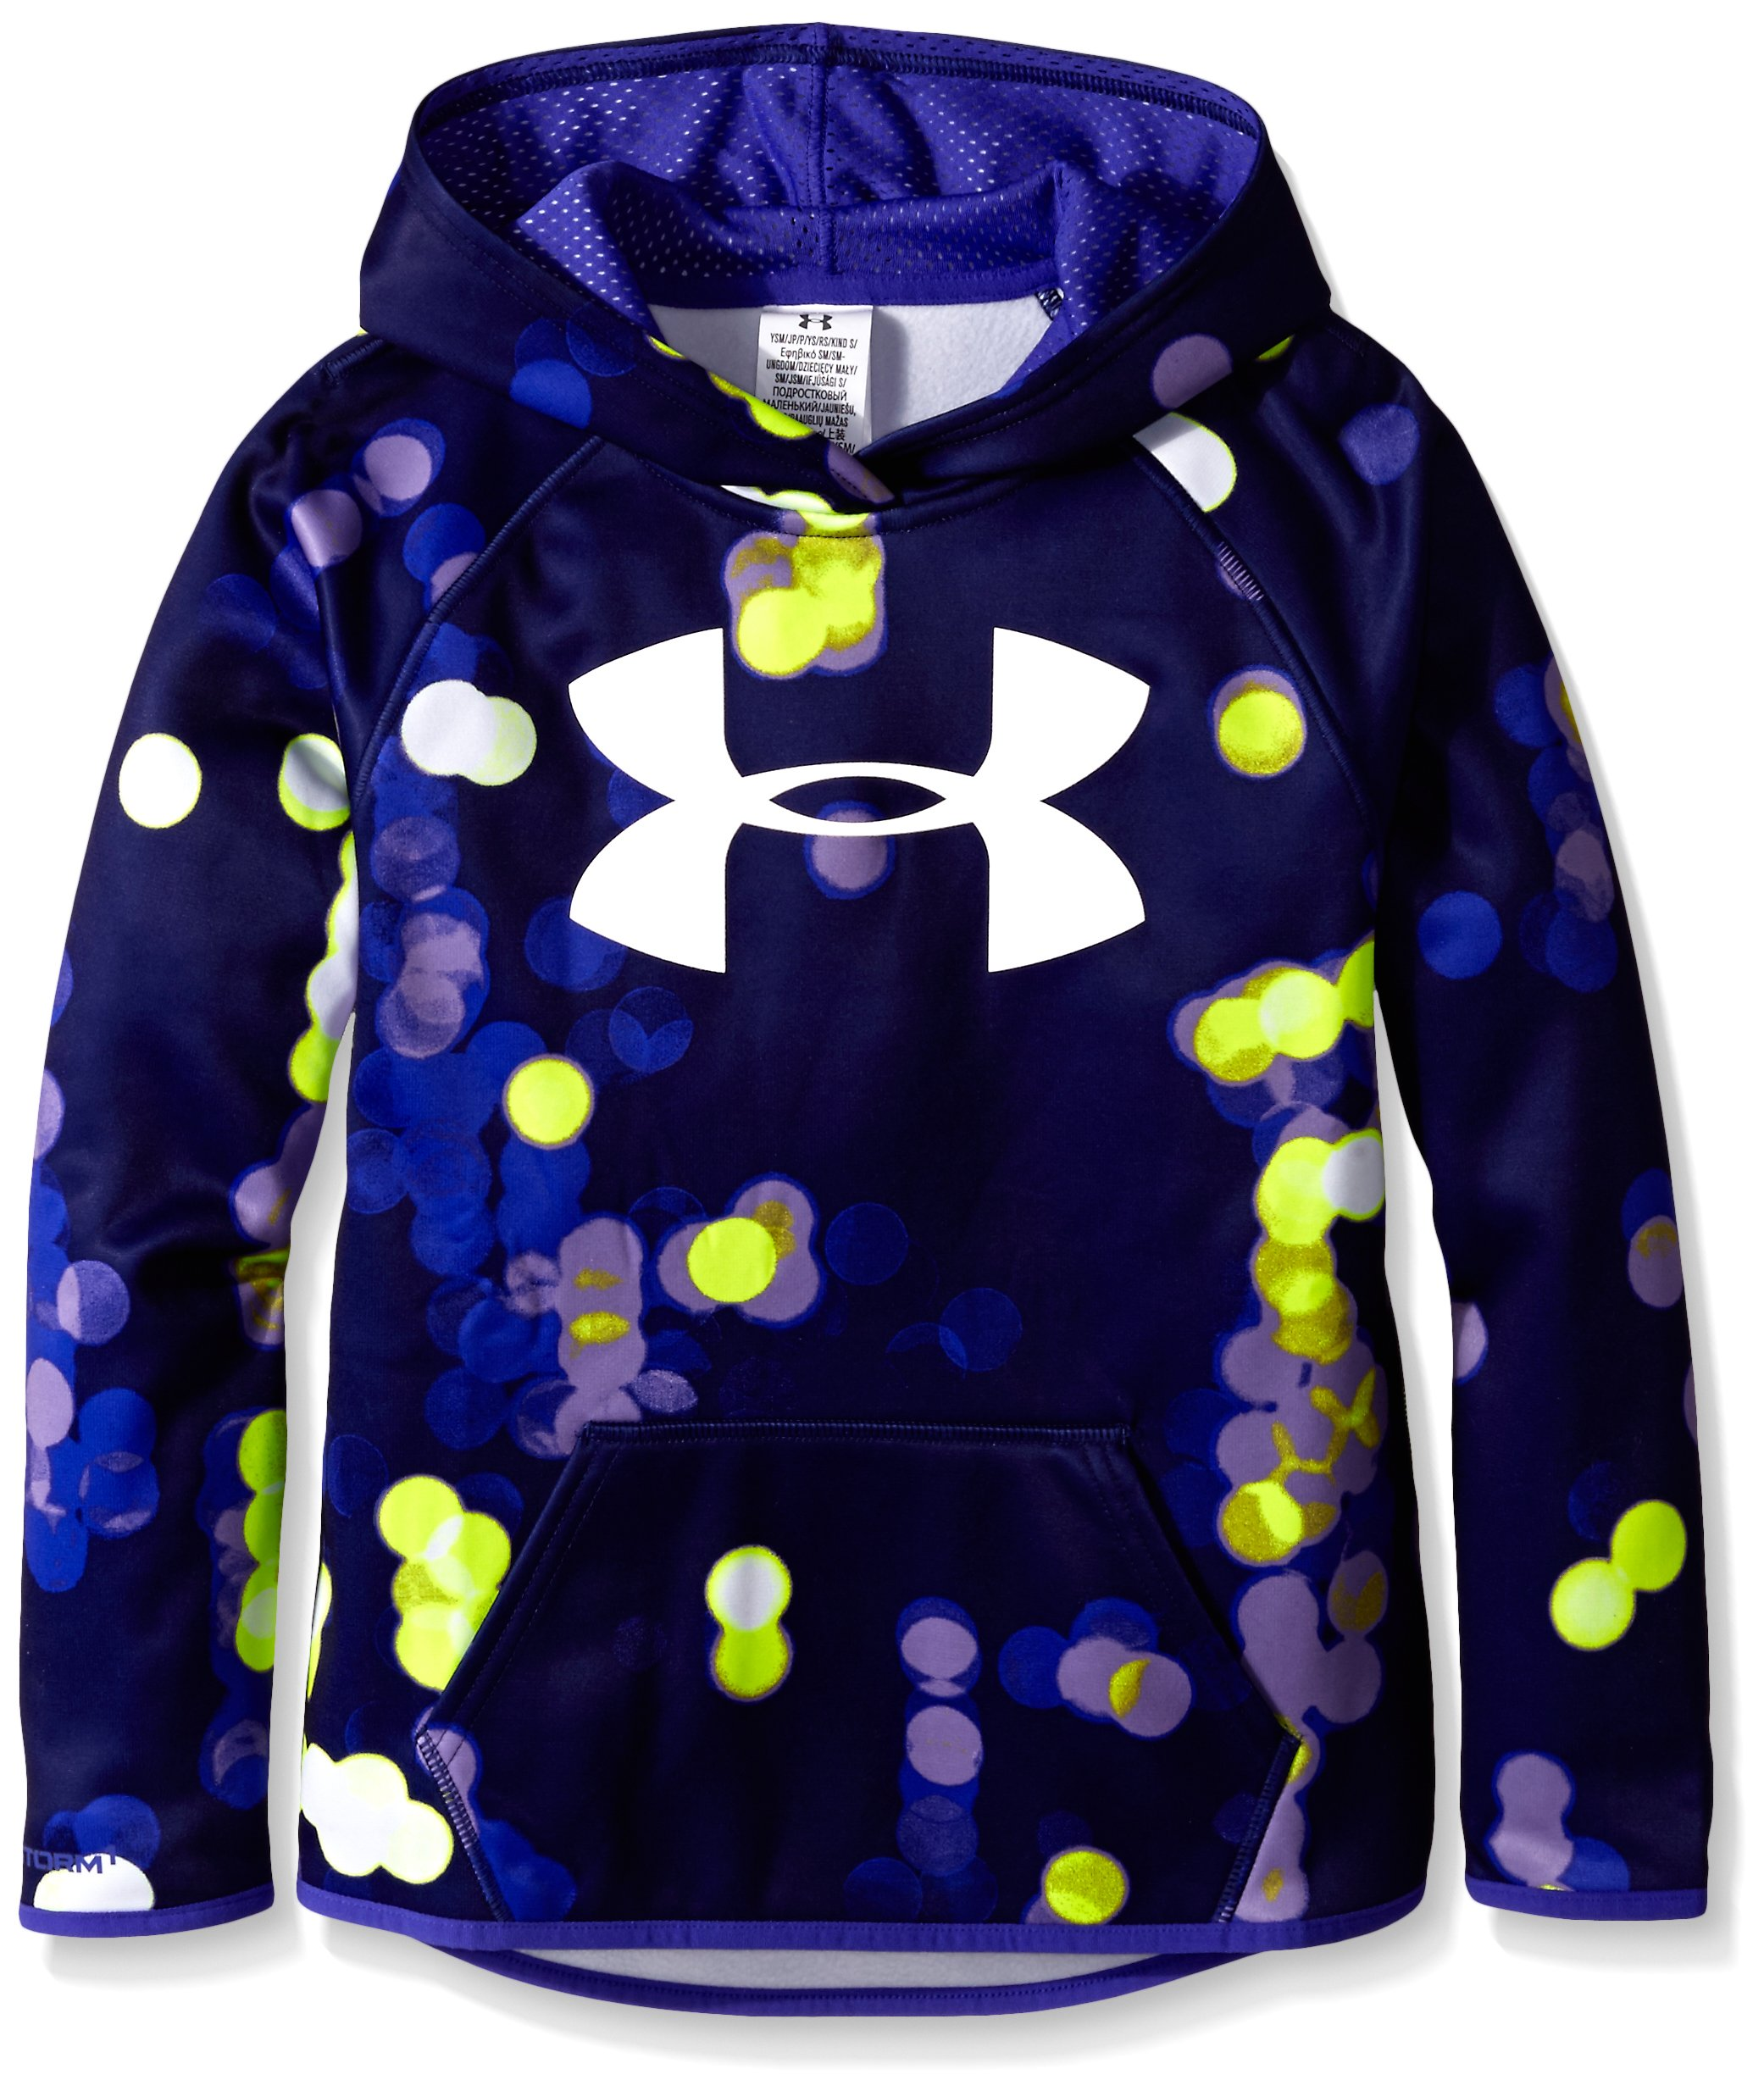 Under Armour Women's Armour Fleece Printed Big Logo Hoodie, Constellation Purple /Vivid Lilac, Youth Small by Under Armour